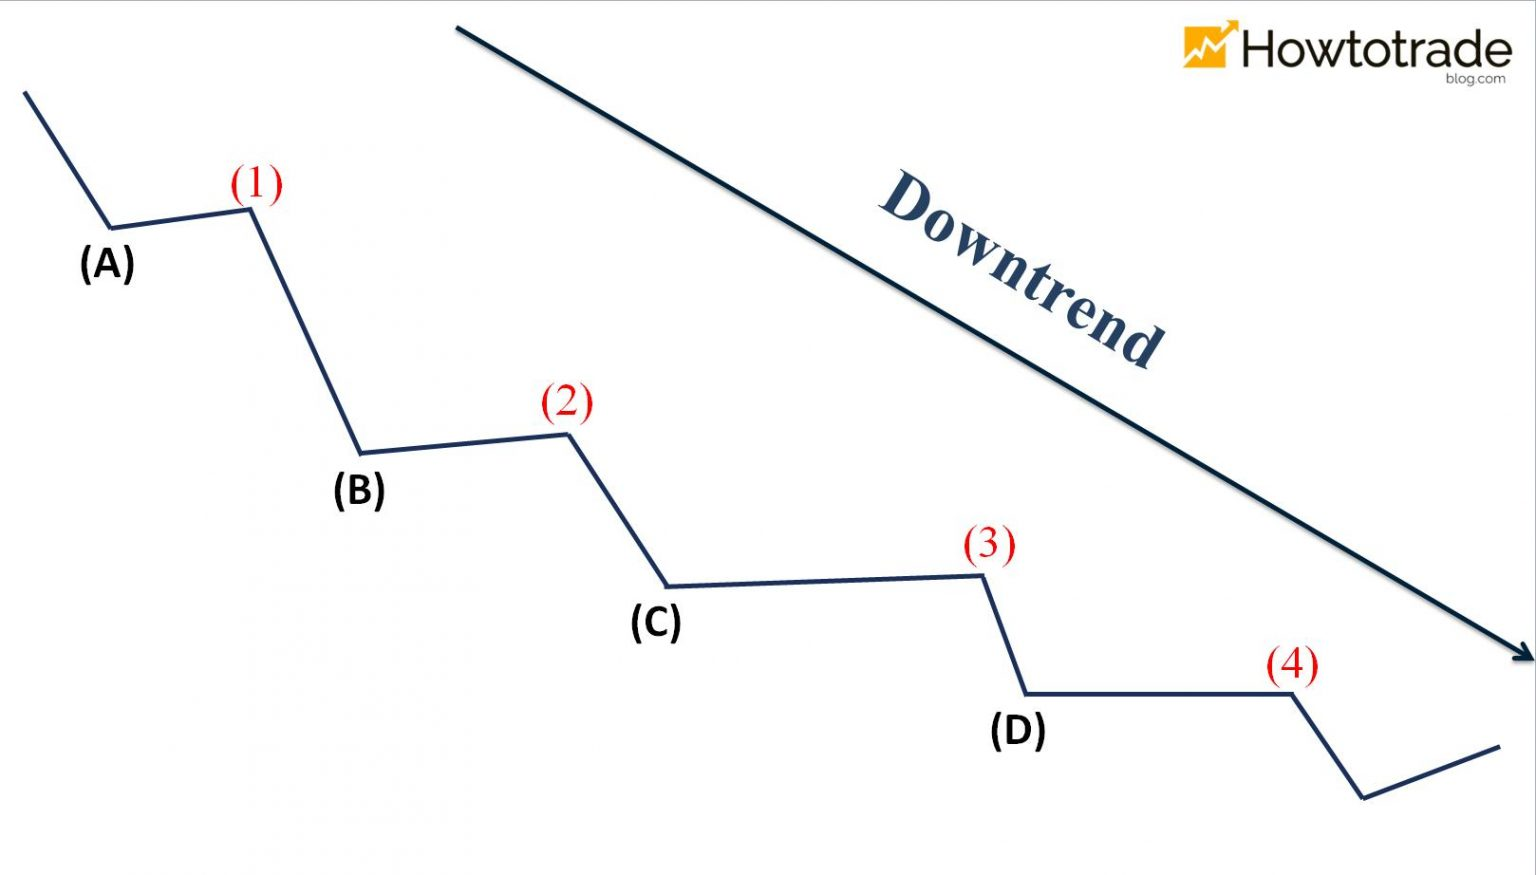 The ladder downtrend pattern